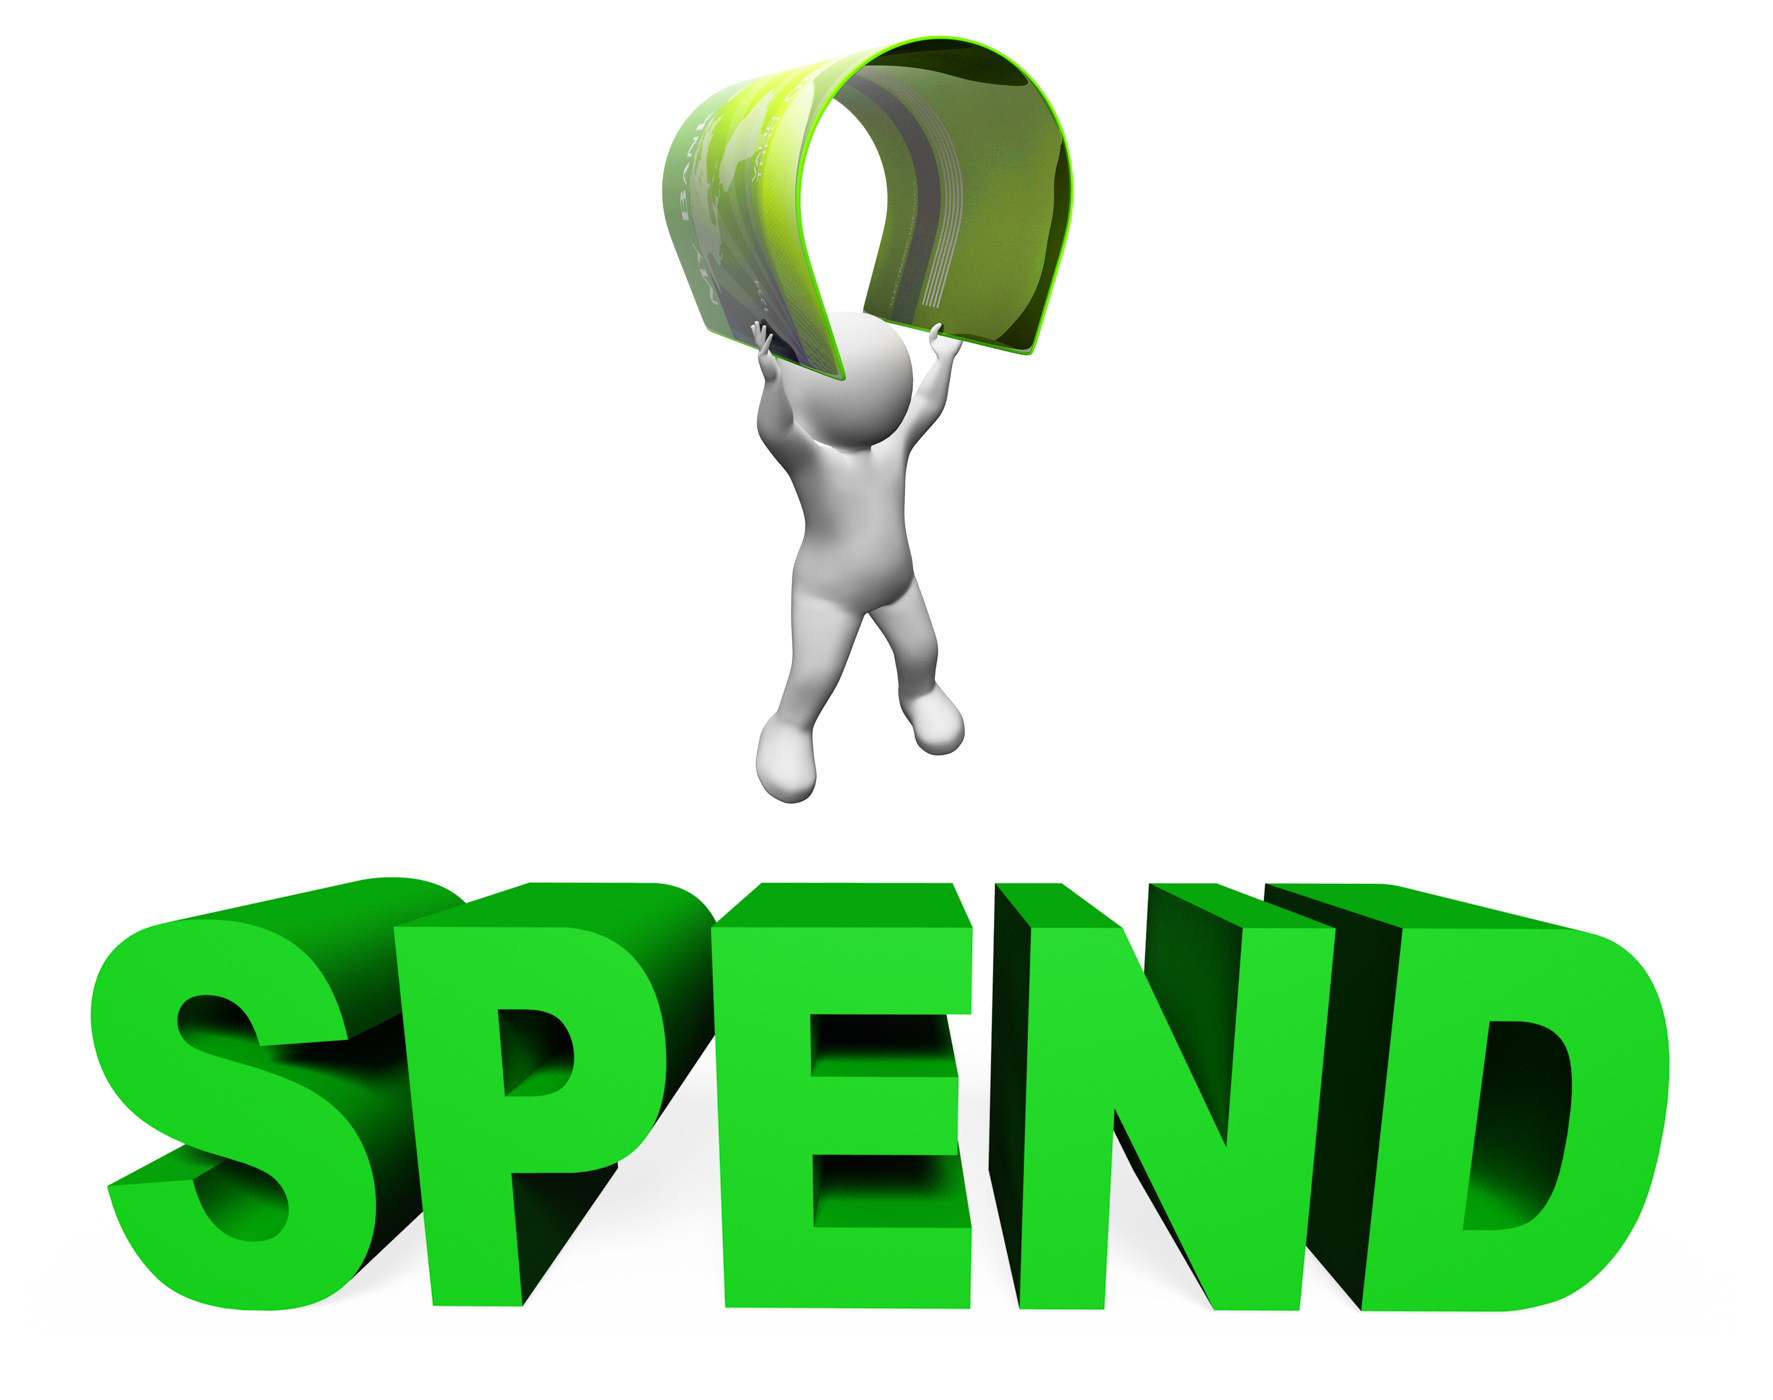 Spend credit card shows illustration spending and buying 3d rendering photo